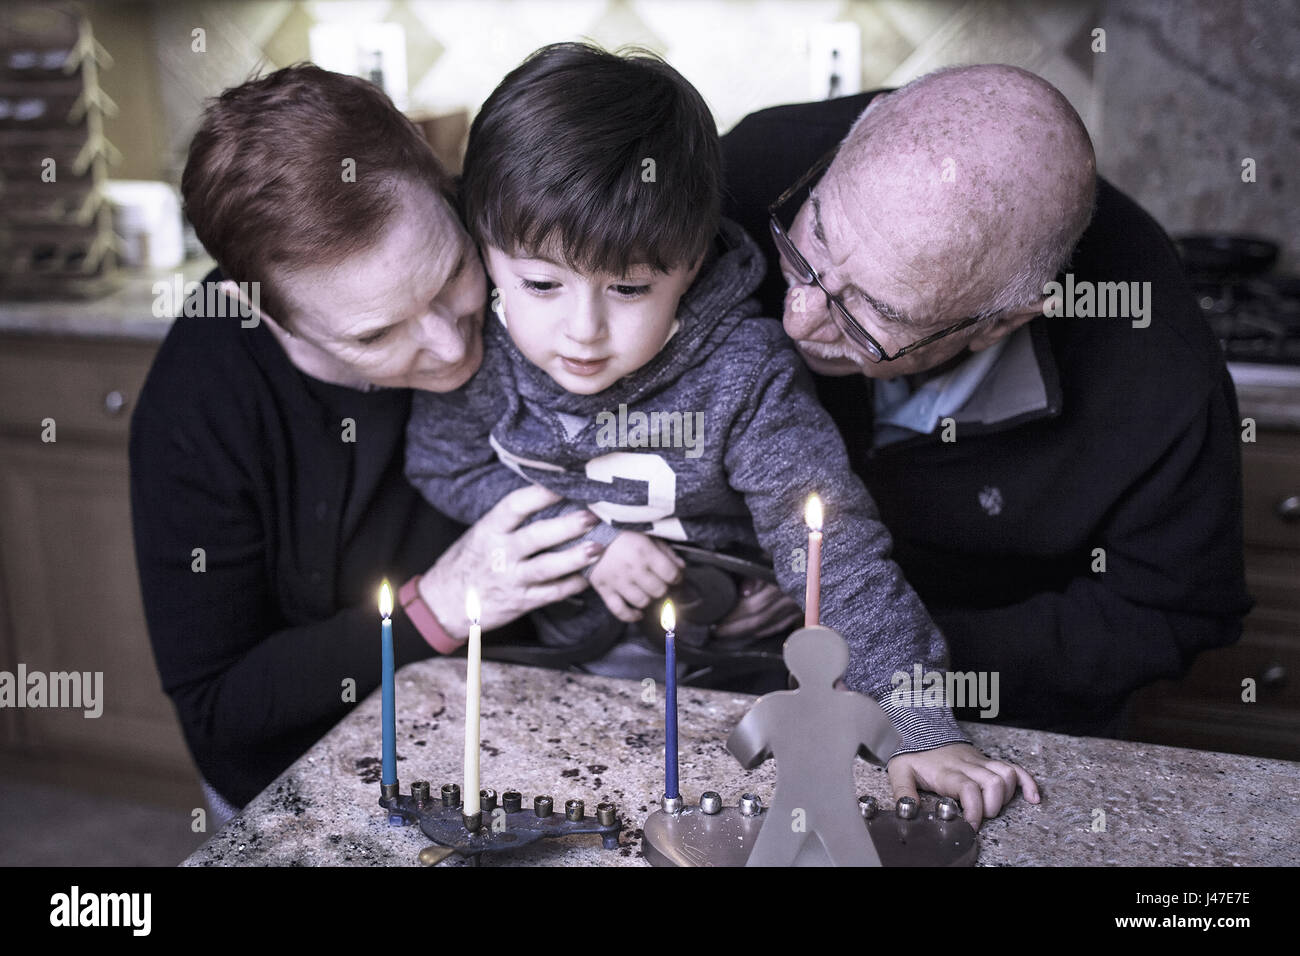 Jewish Family of grandparents and grandson lighting Hanukkah Candles in a menorah for the holdiays - Stock Image